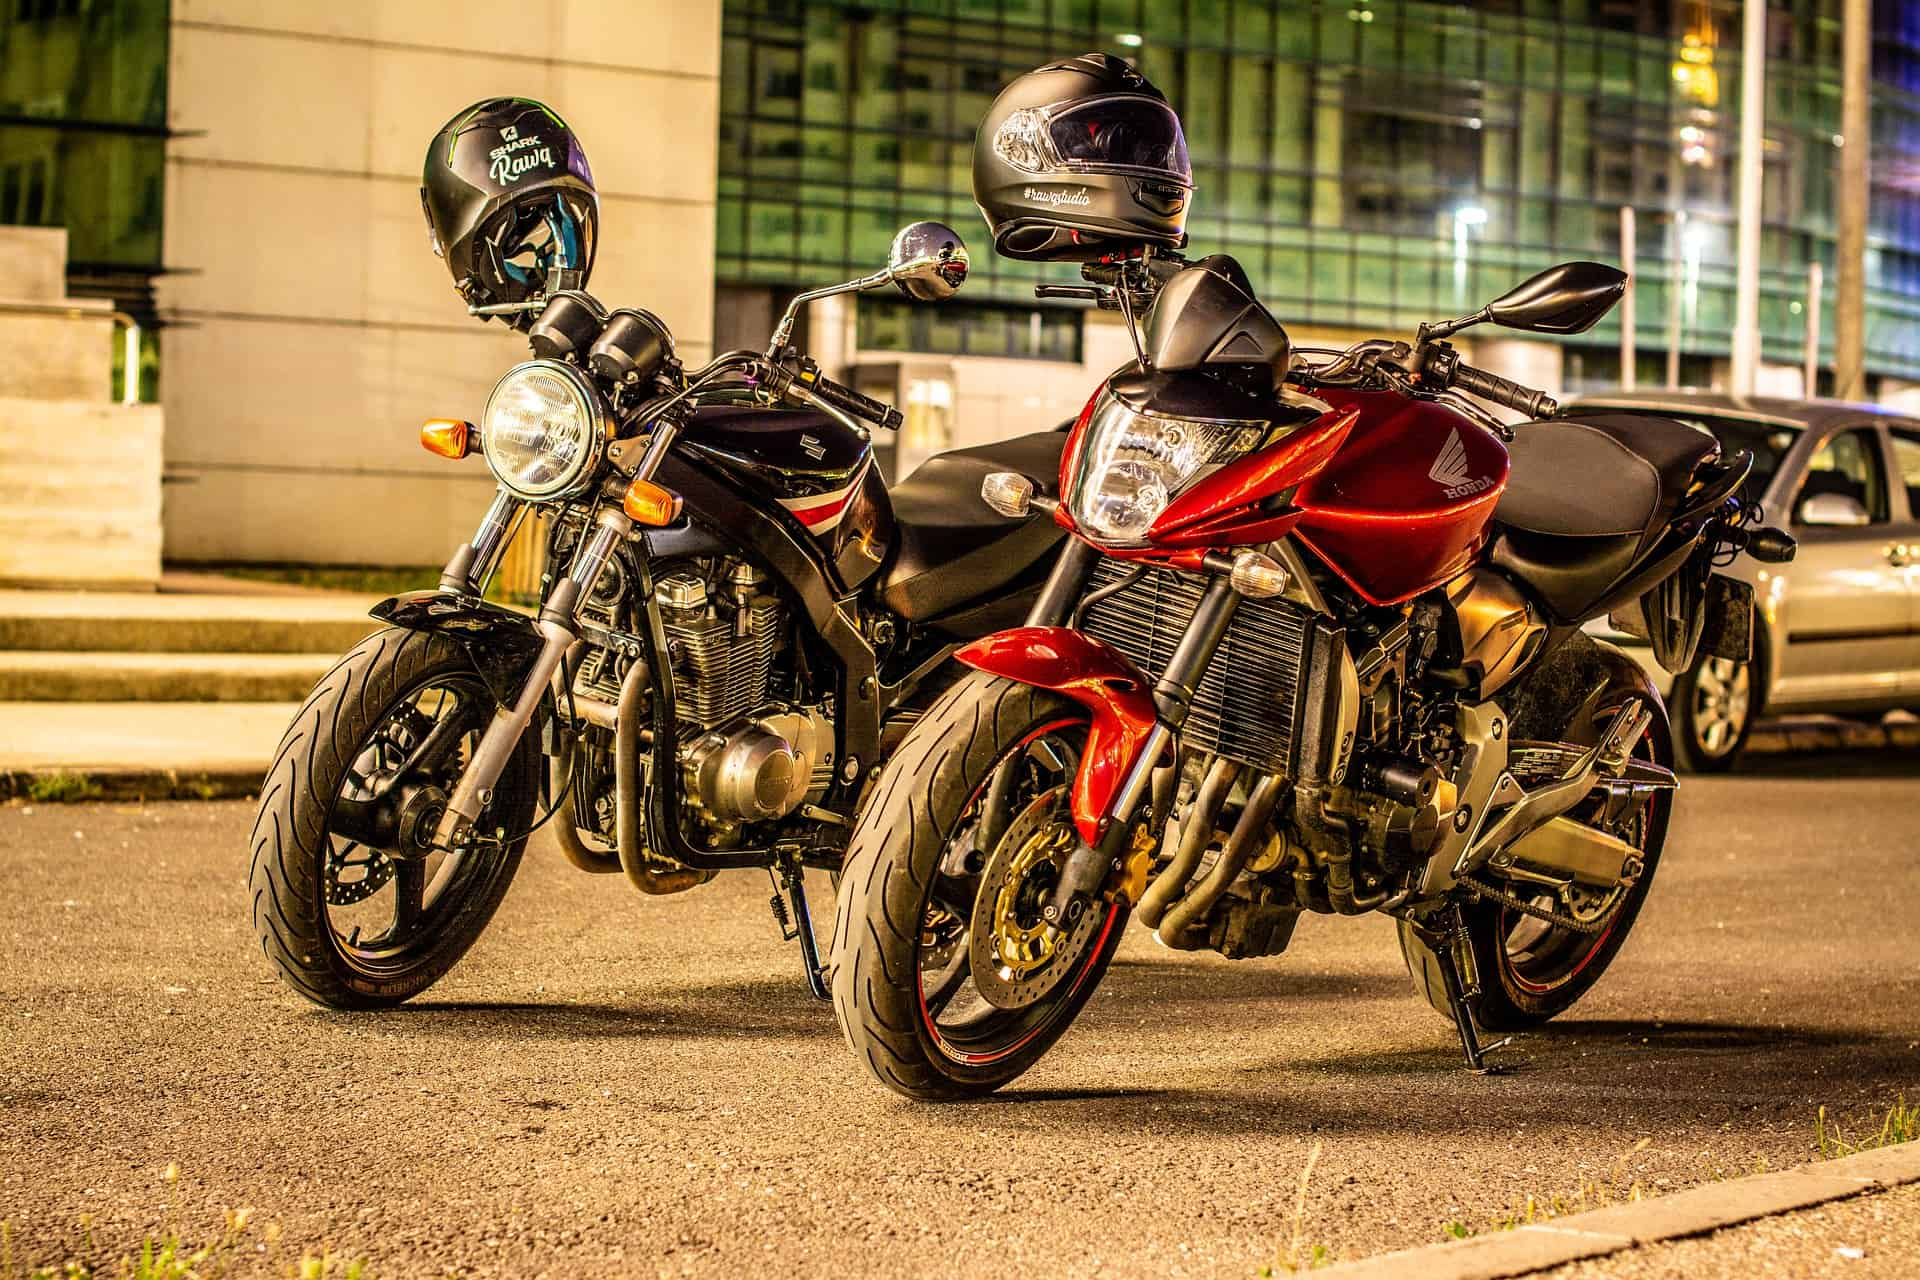 Motorcycle Trips: Top Places To Drive With Friends